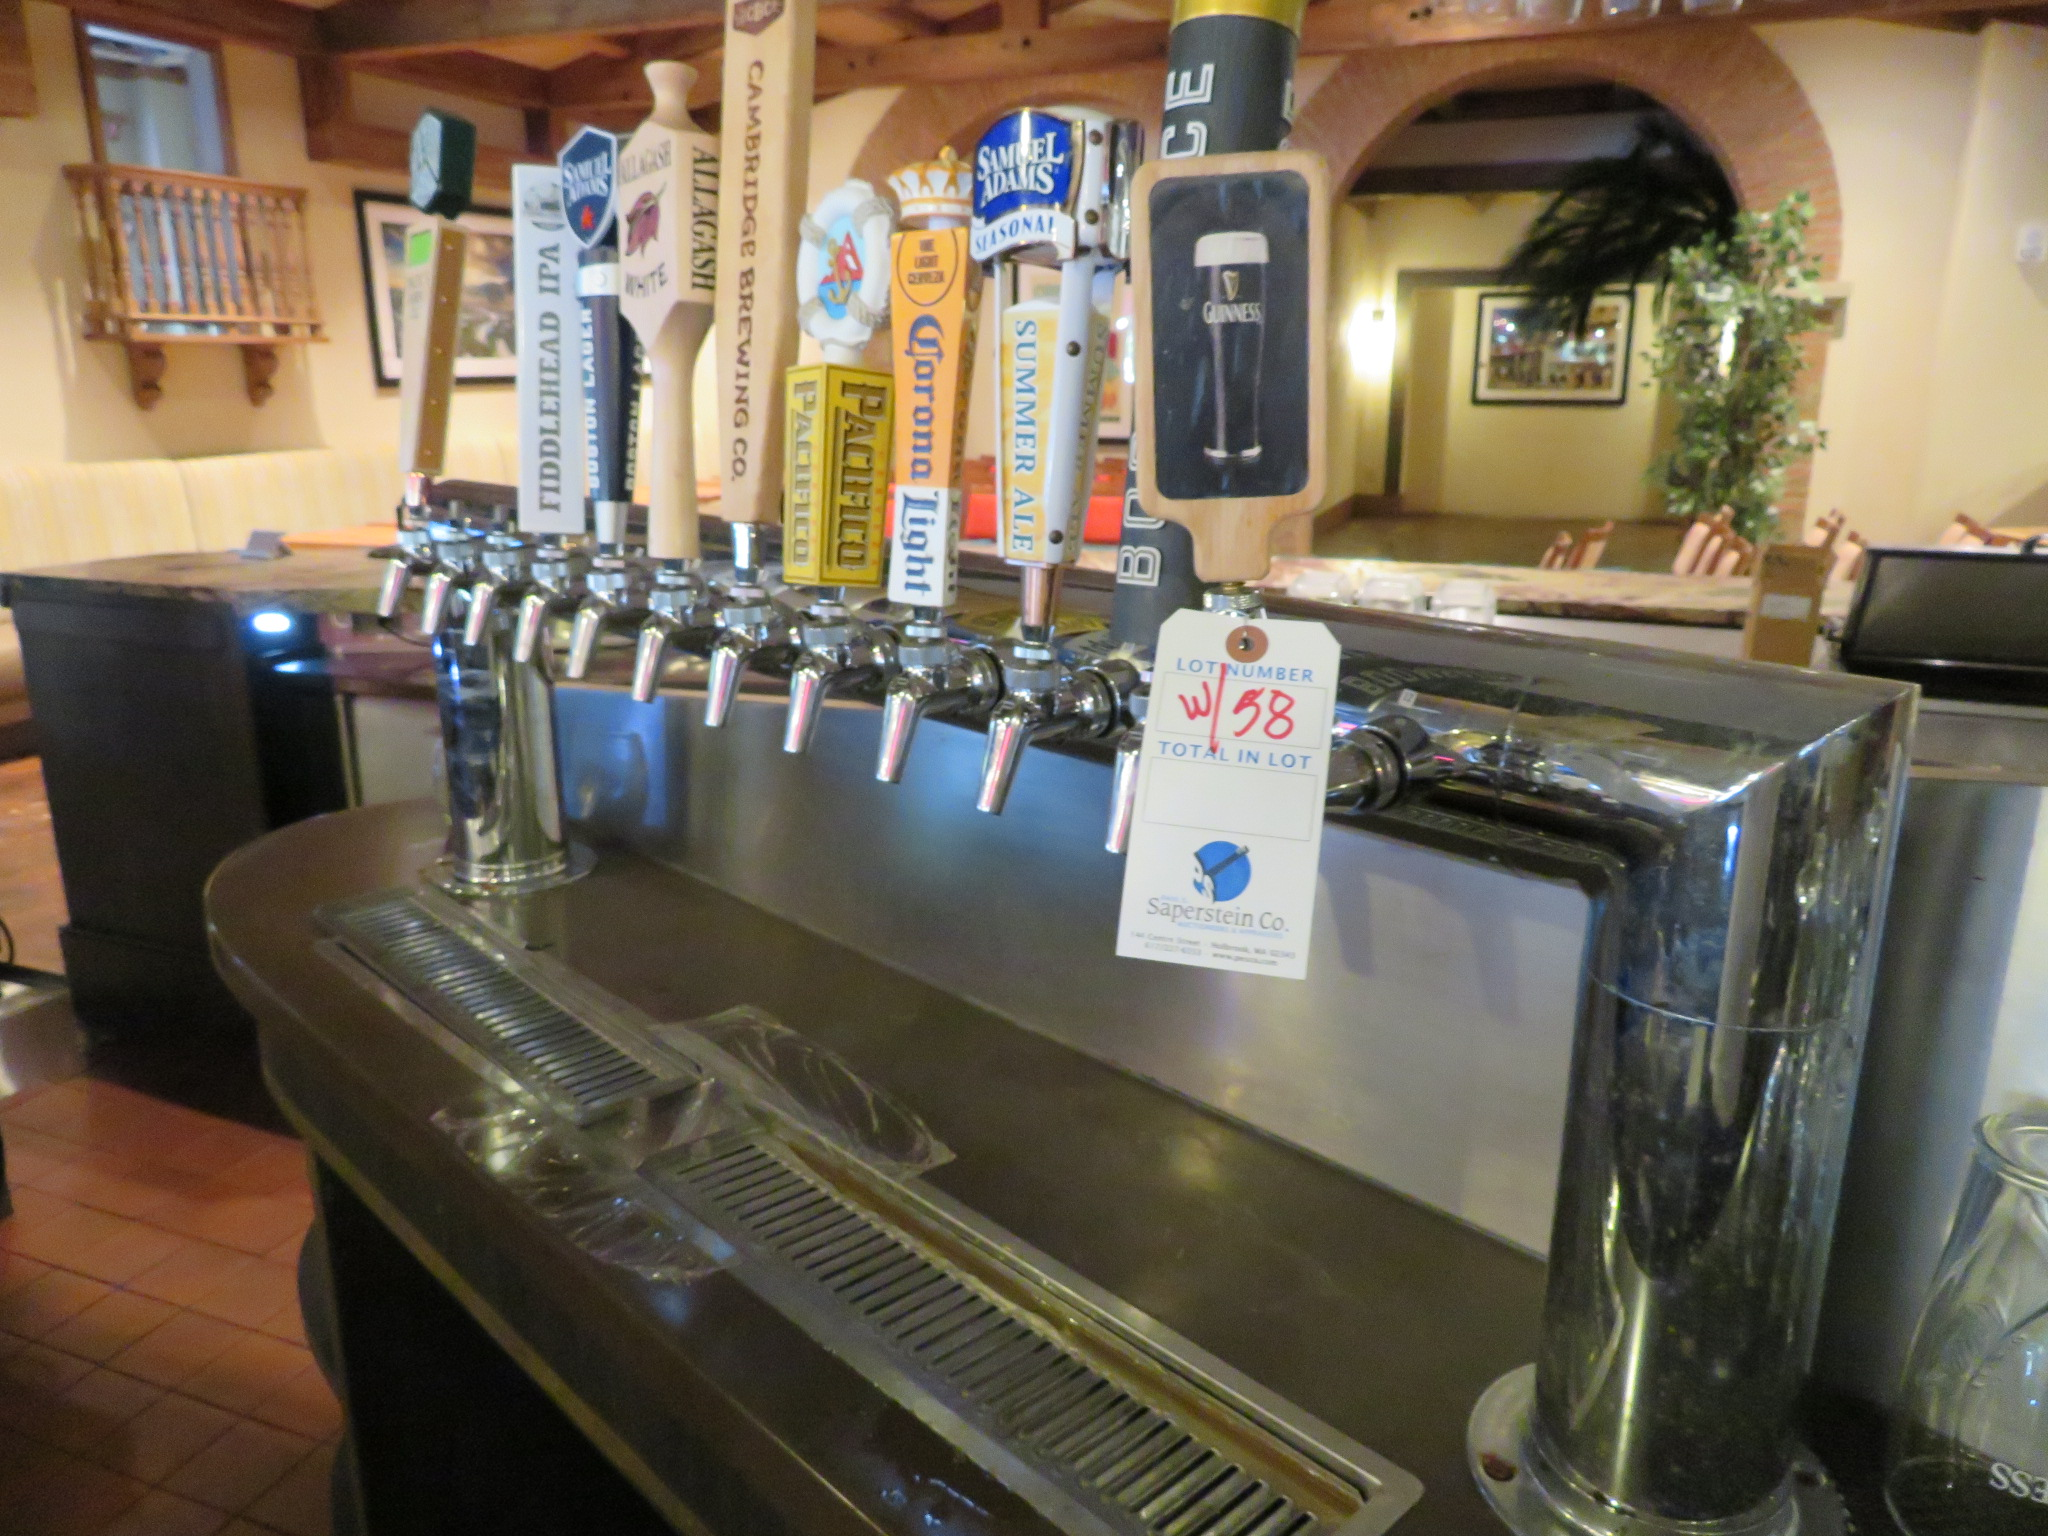 Lot 58 - (Lot) Perlick Beer Draught System w/ Bar Top Beer Taps & Pumps System